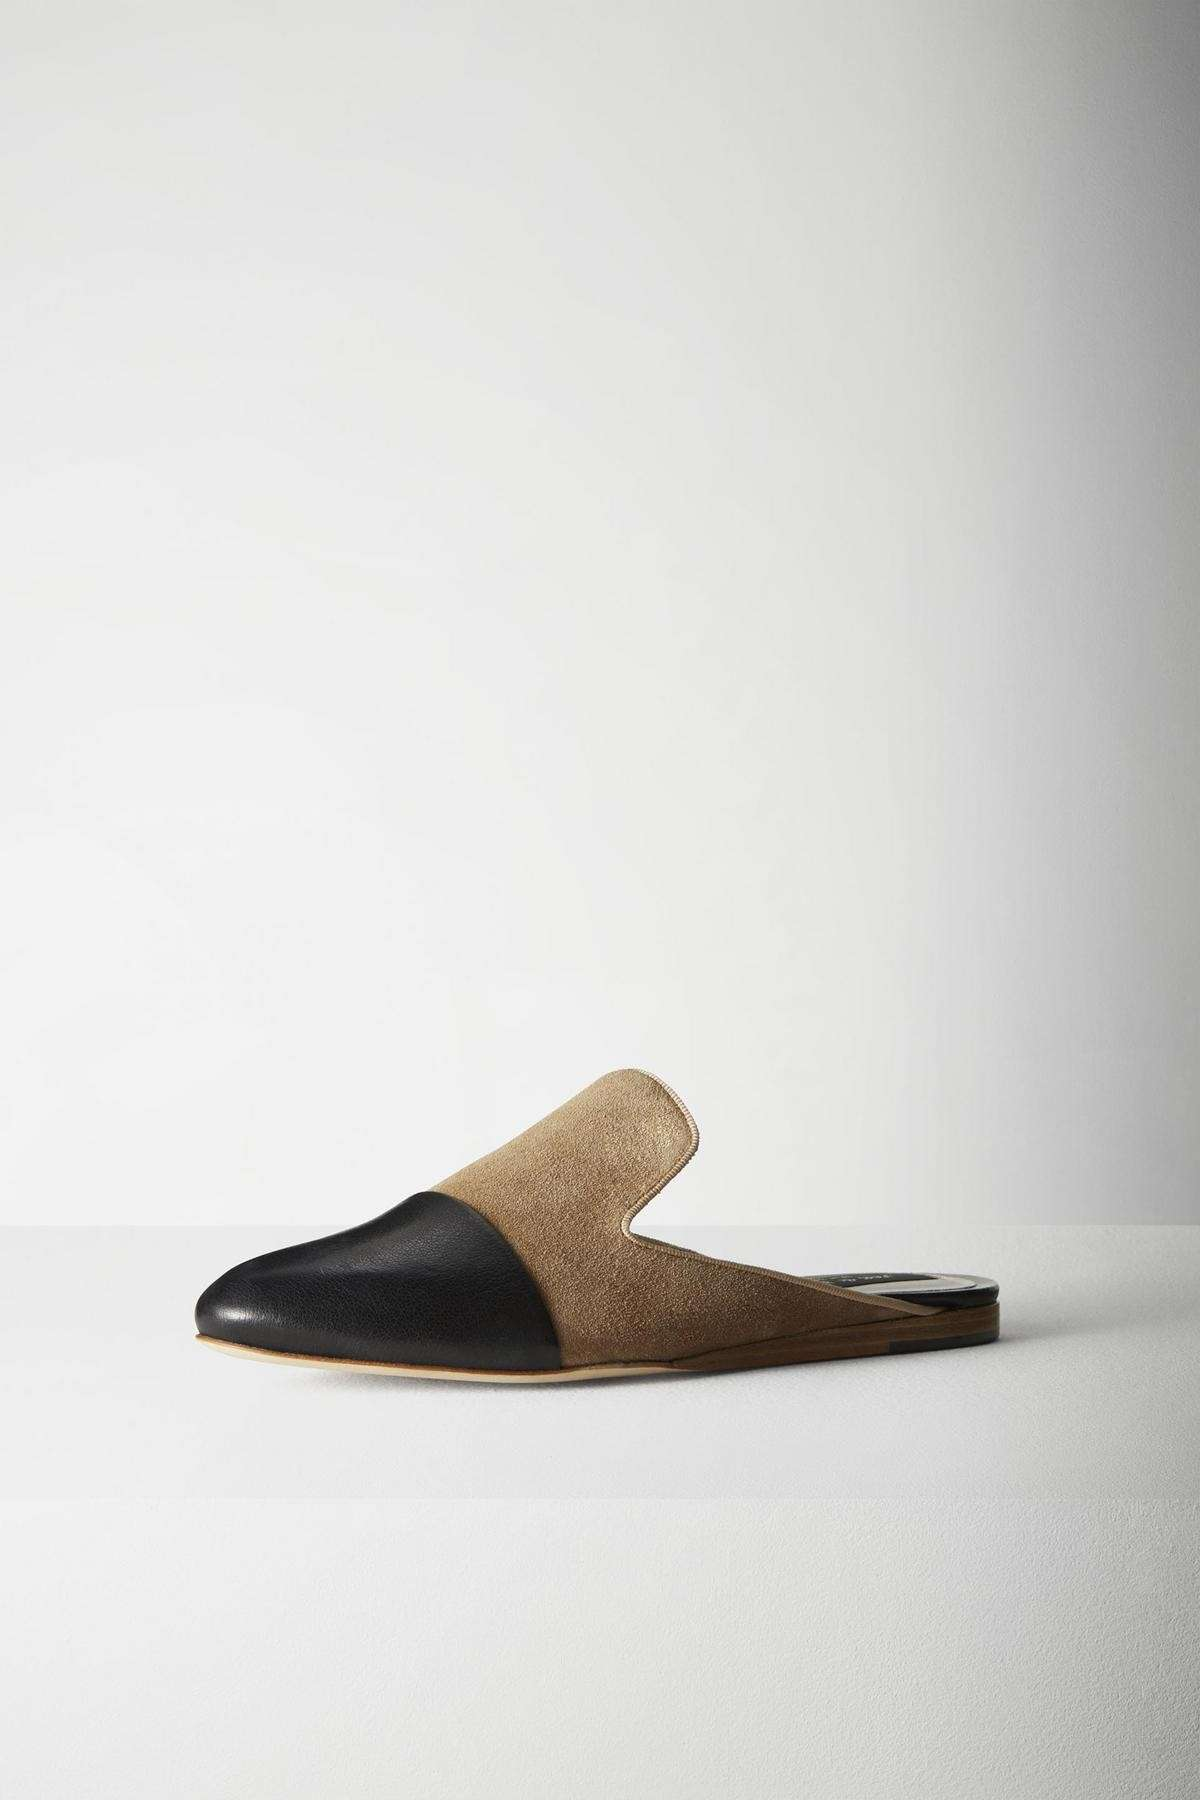 Slippers nere in suede cammello